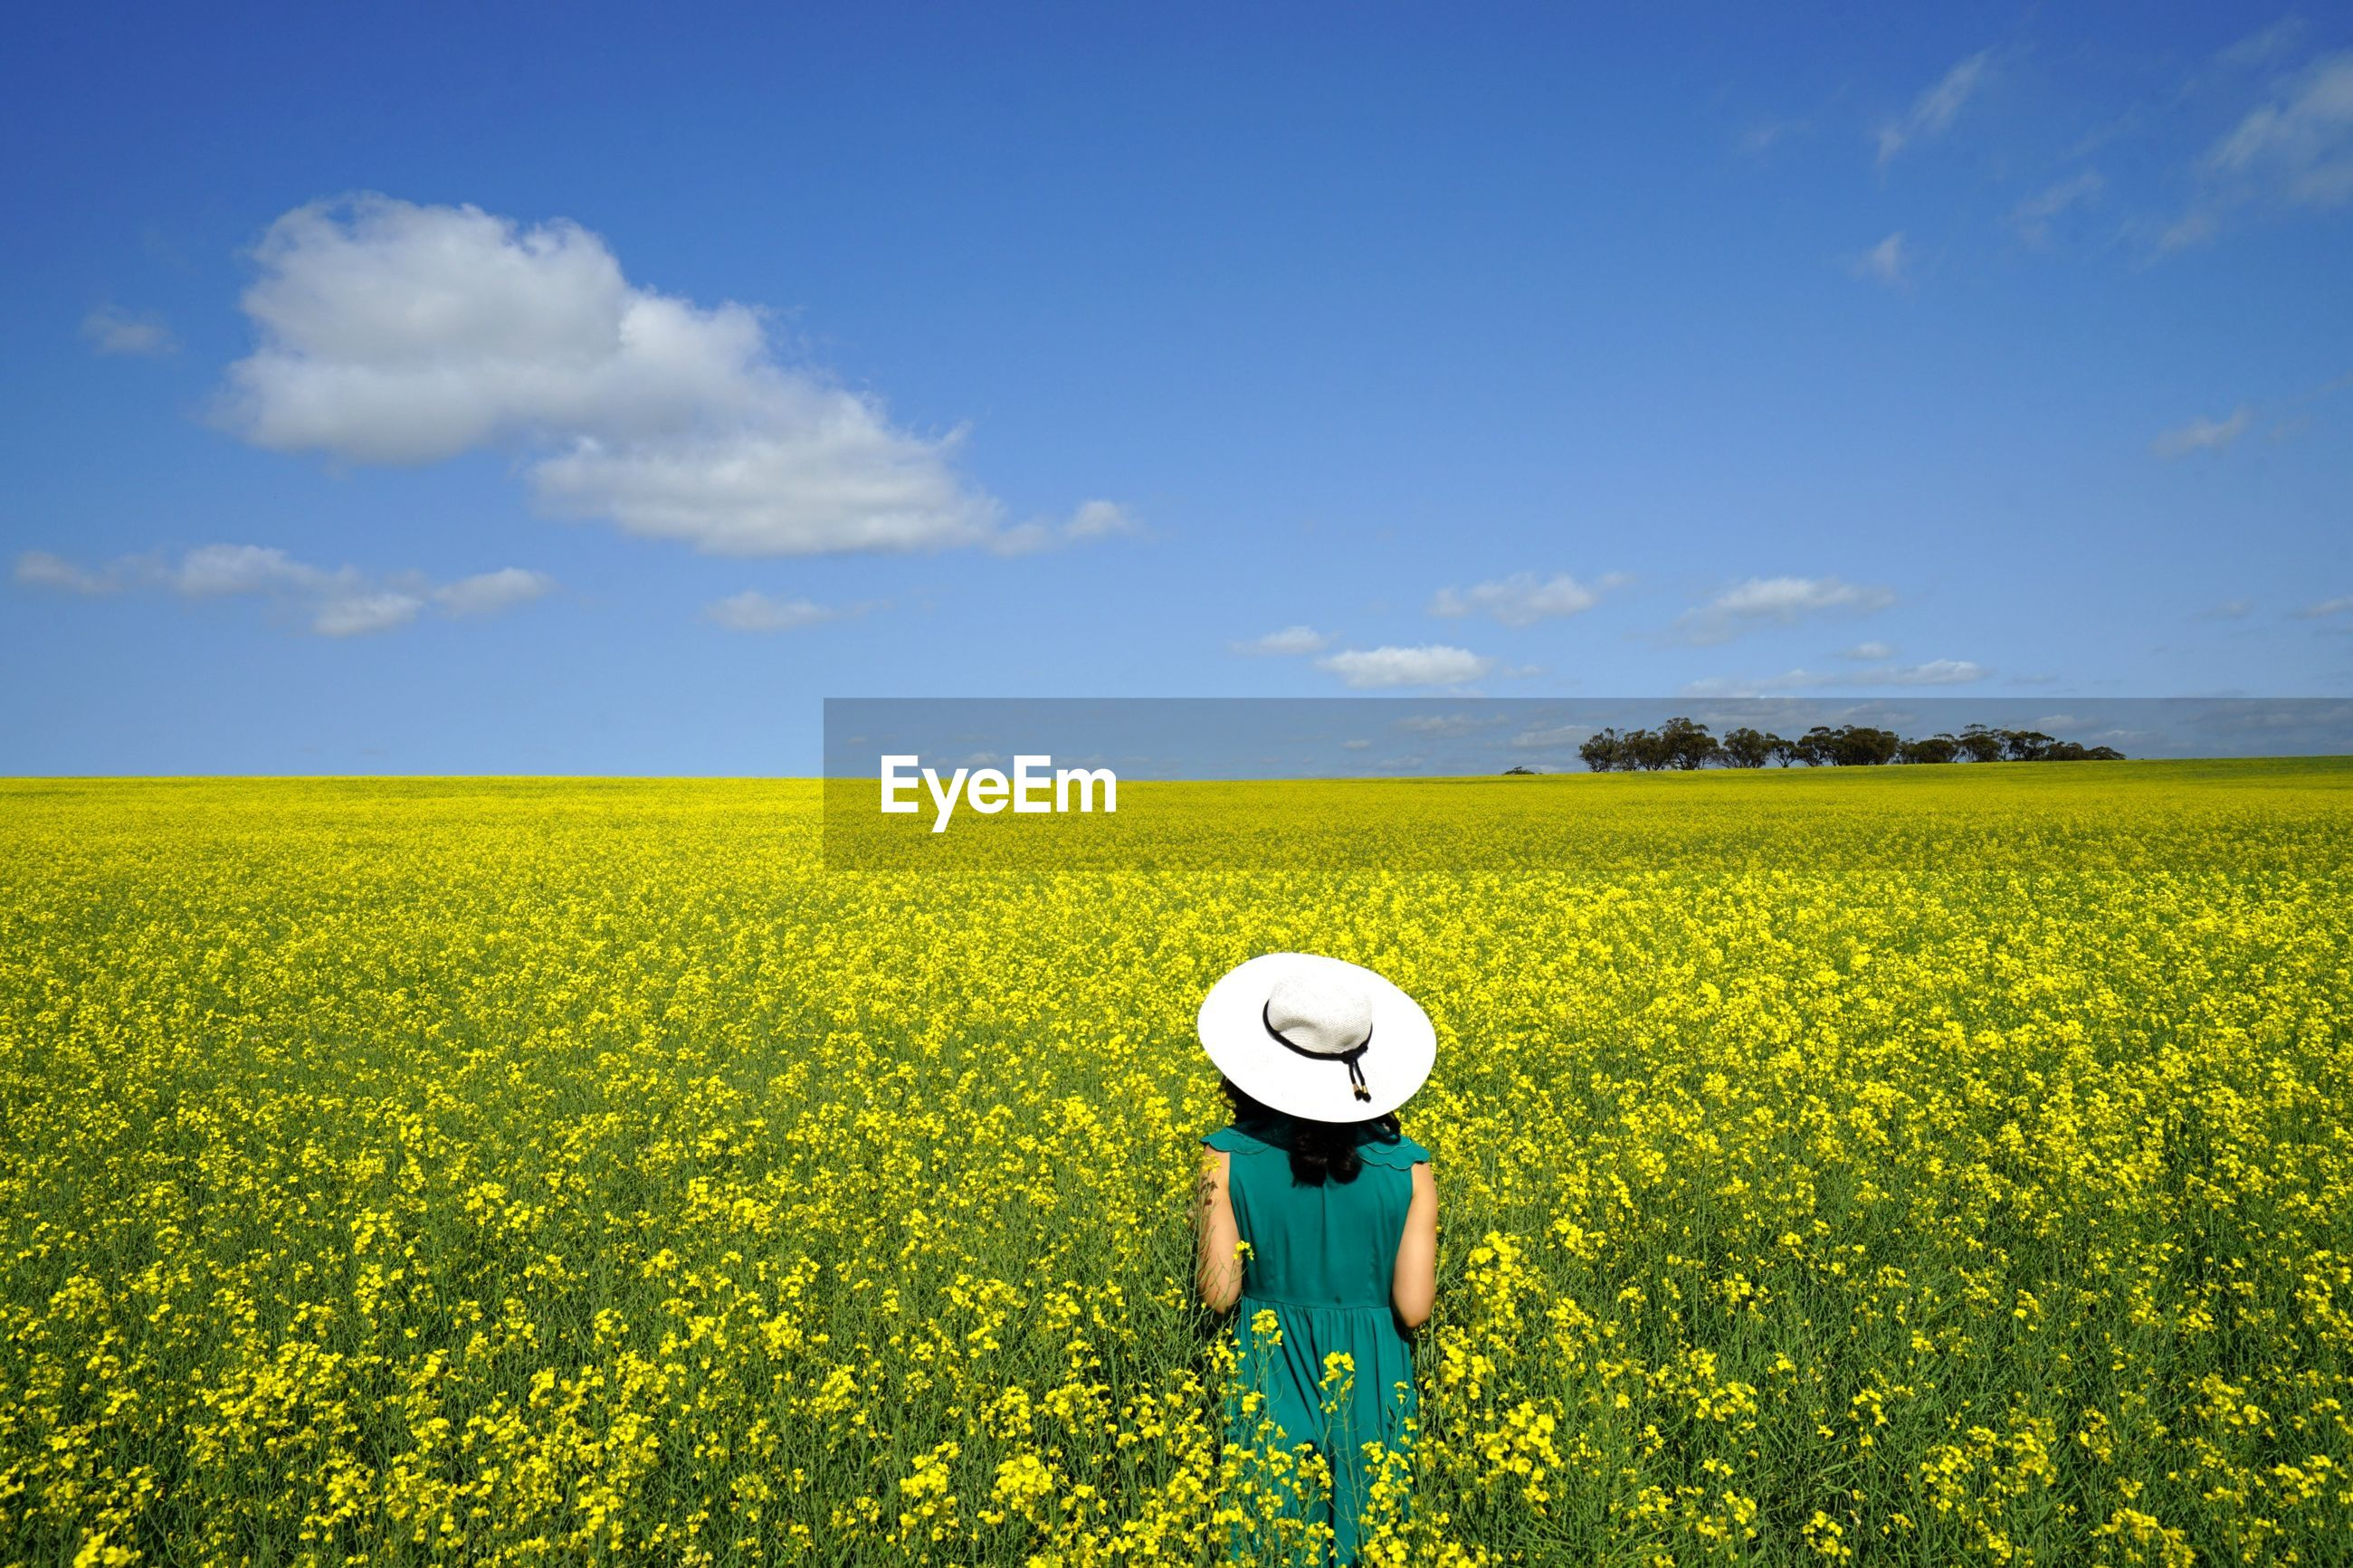 Rear view of woman standing amidst flowers against blue sky during sunny day